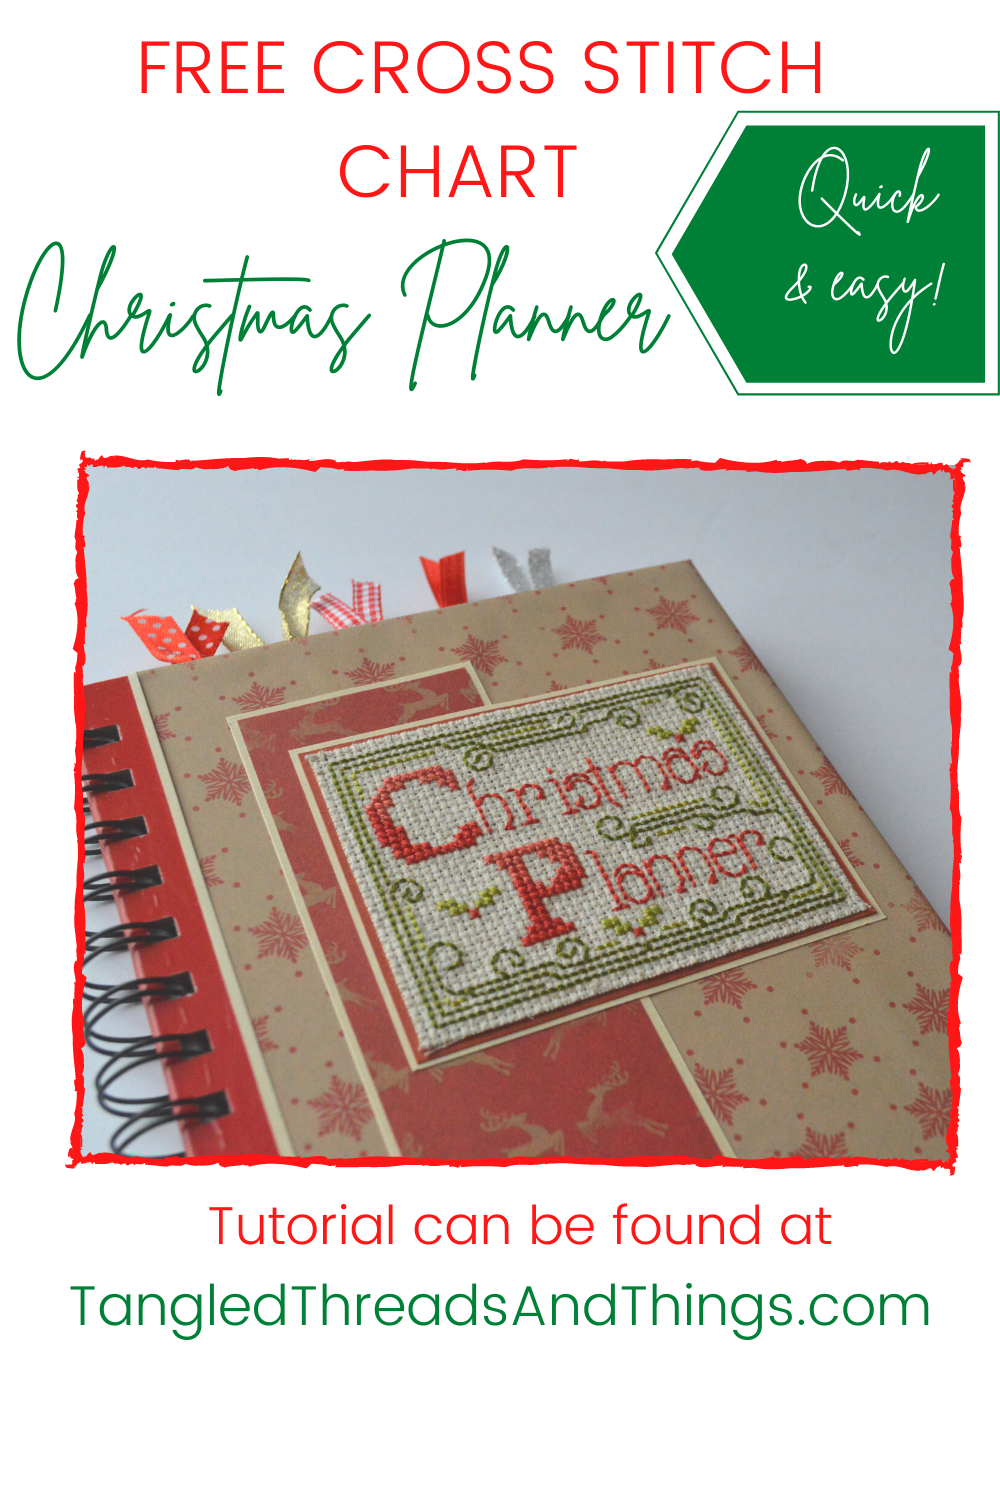 "In red text, ""Free Cross Stitch Chart"" is written on white. Below, in green, are the words ""Christmas Planner"". Below the text is an image of a cross stitch Christmas planner."